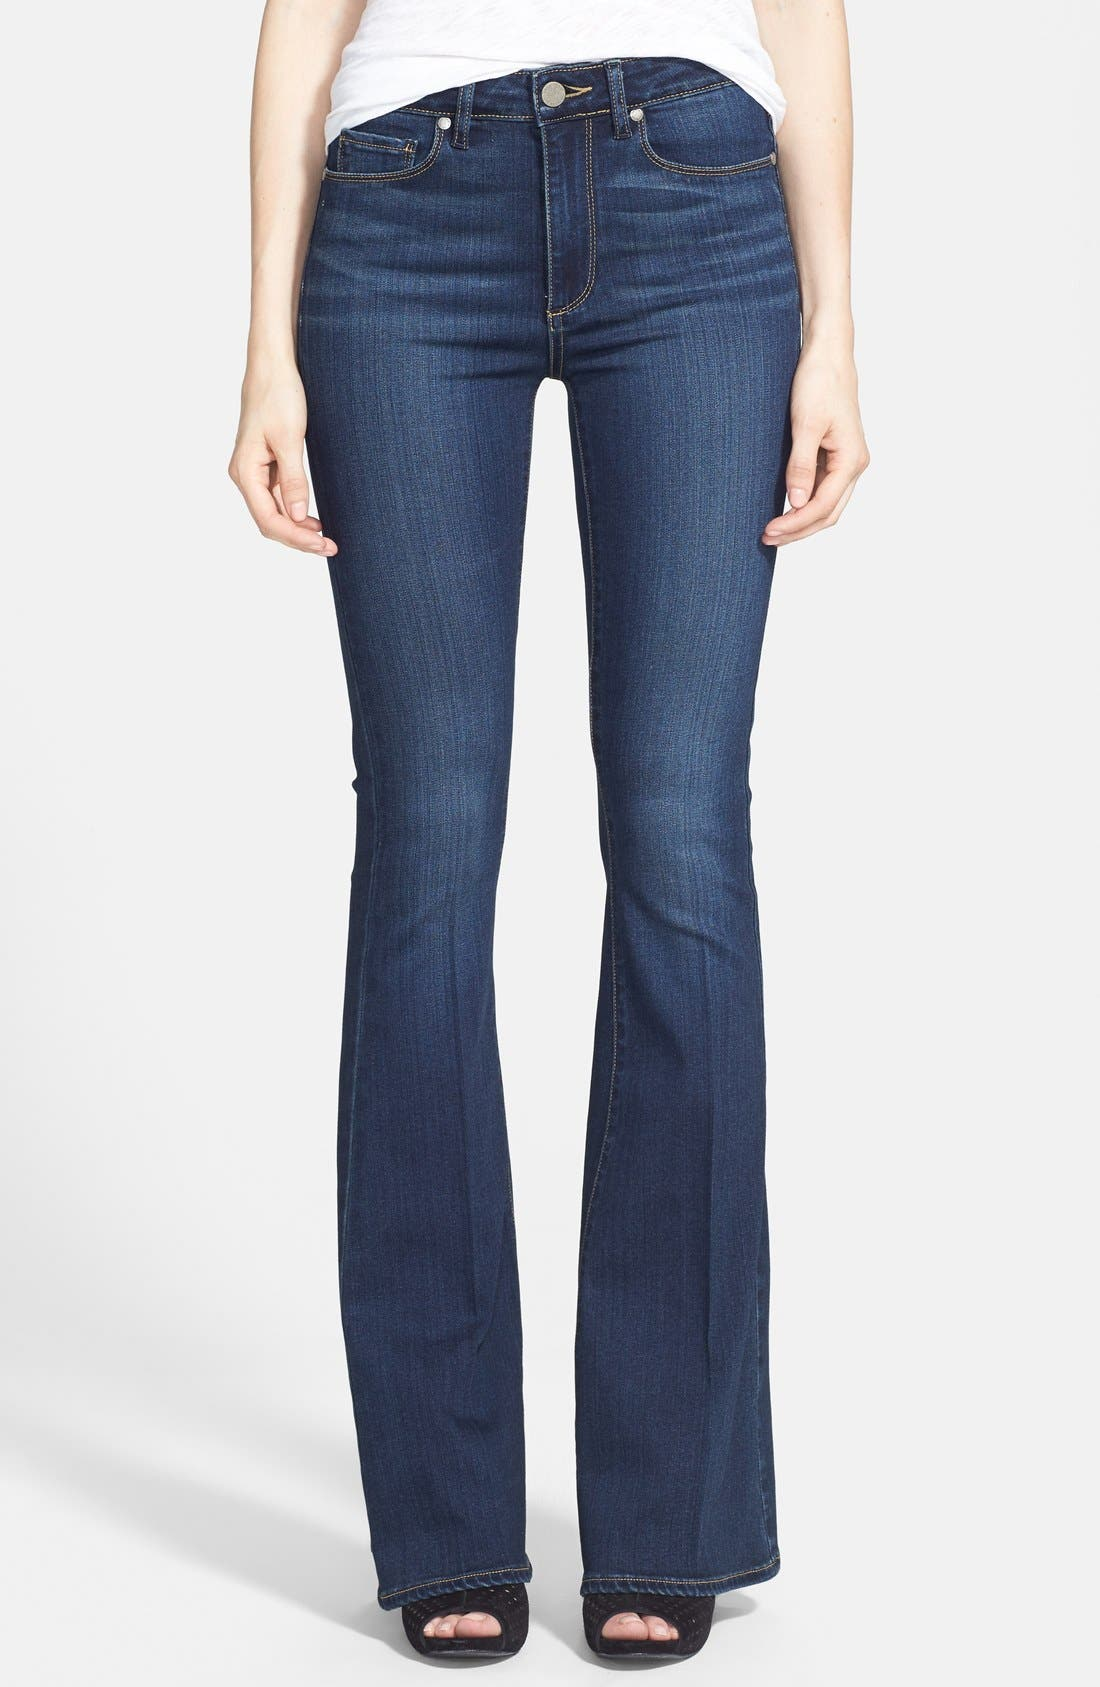 'Transcend - Bell Canyon' High Rise Flare Jeans,                             Main thumbnail 1, color,                             Nottingham